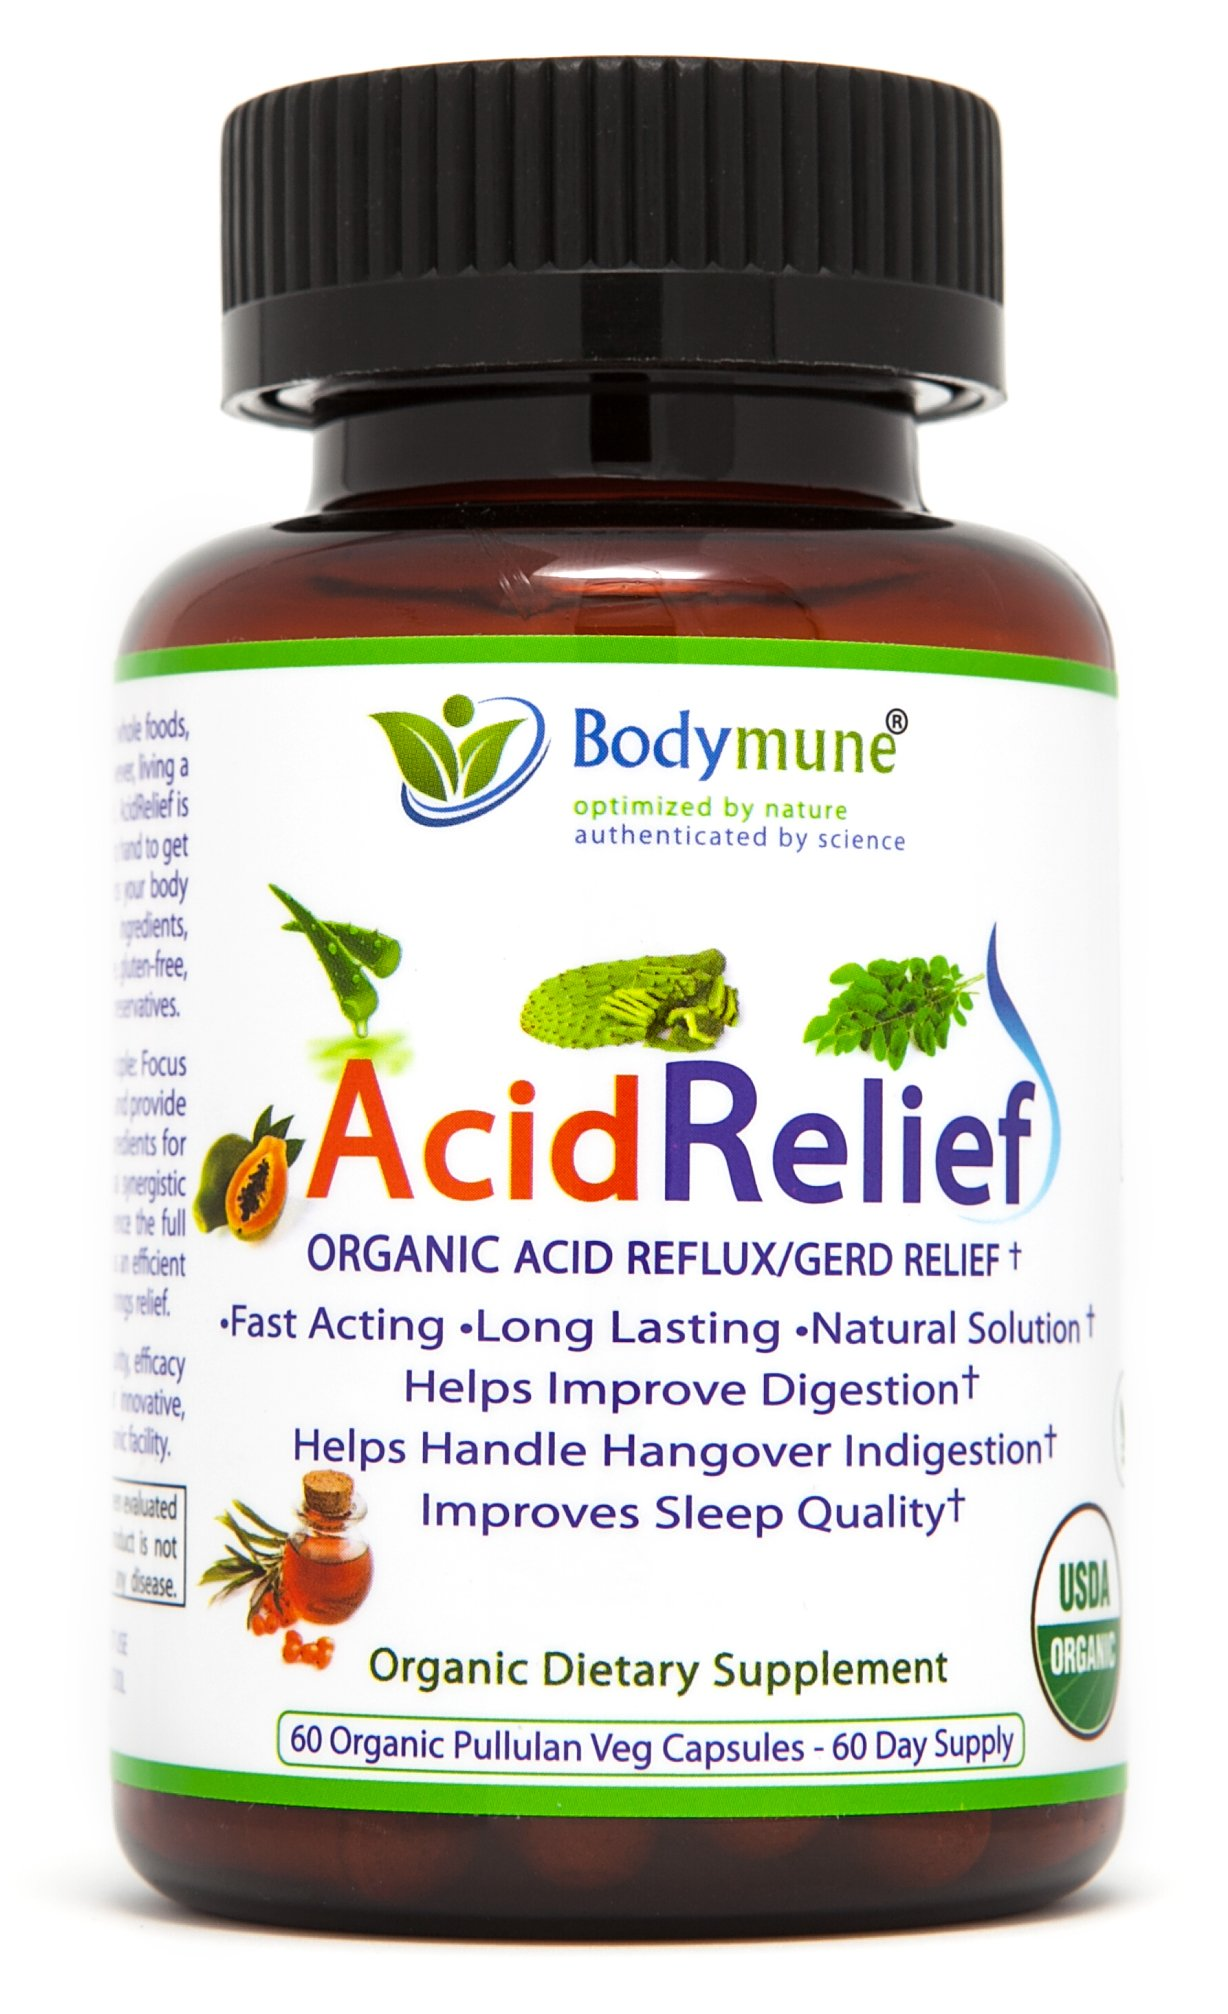 Acid Relief, Antacid, GERD Relief, Indigestion Relief All Natural USDA Organic 100% Vegan Nutritional Support by Bodymune | Acid Reflux Relief, Heartburn Relief, Stomachaches, Digestion Help - 60 Cap by Bodymune (Image #4)